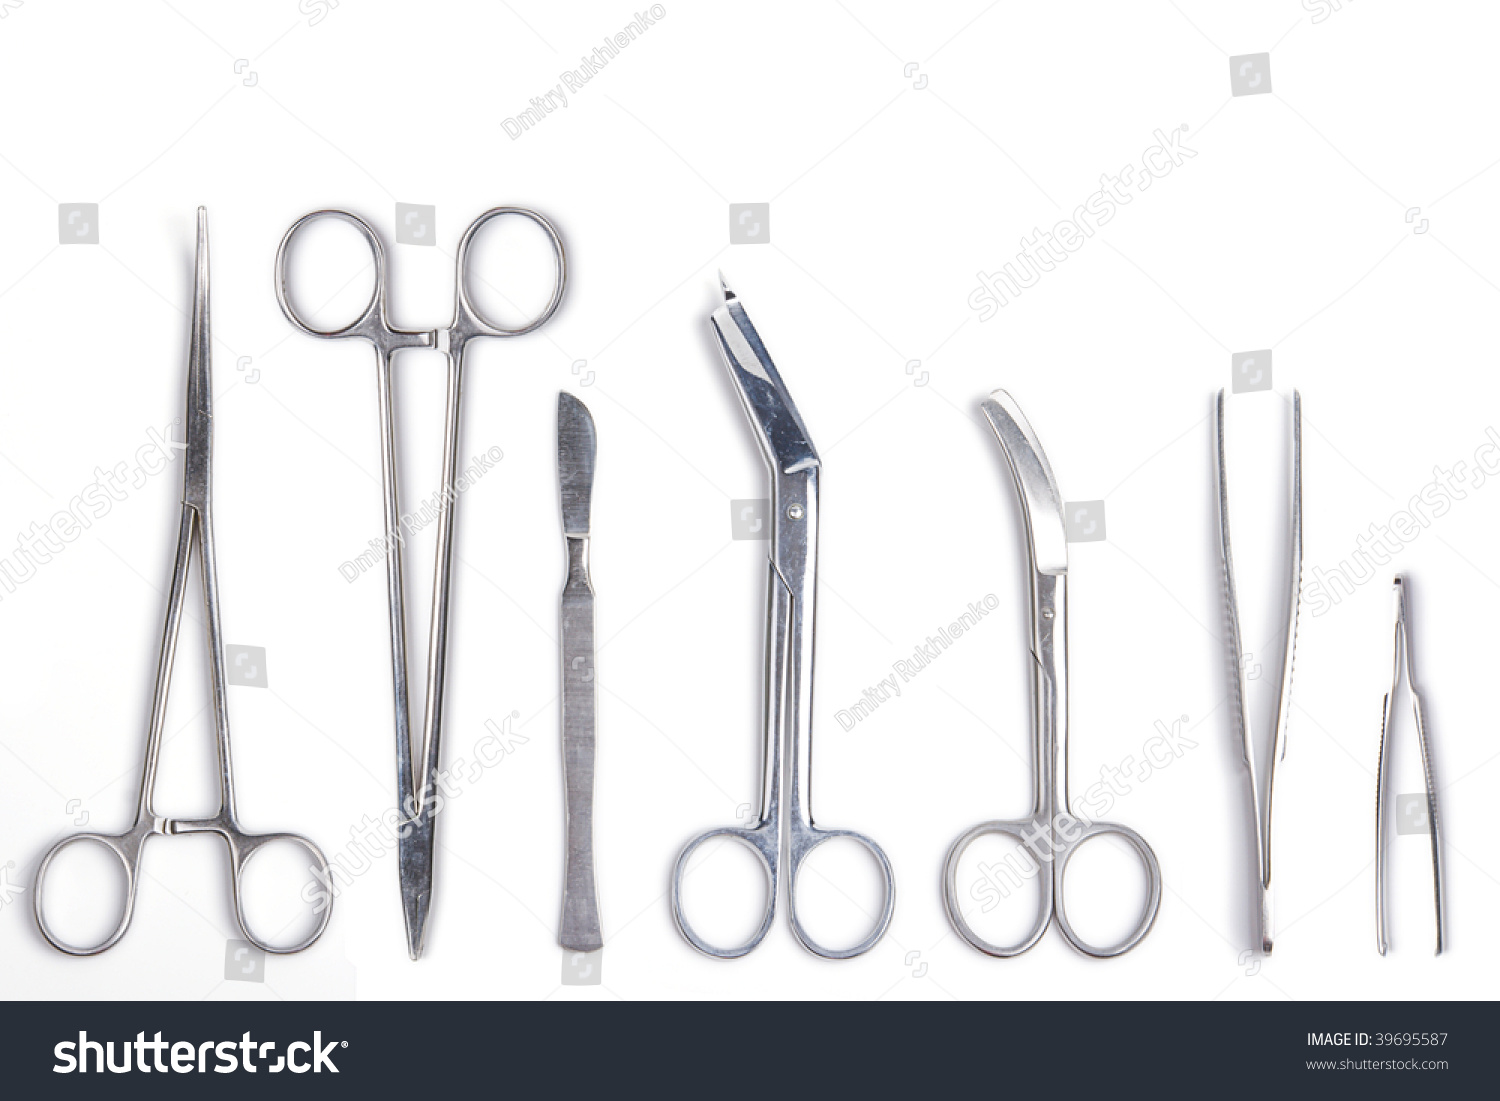 Surgeon Tools Surgical Scalpel Forceps Clamps Stock Photo 39695587 ...